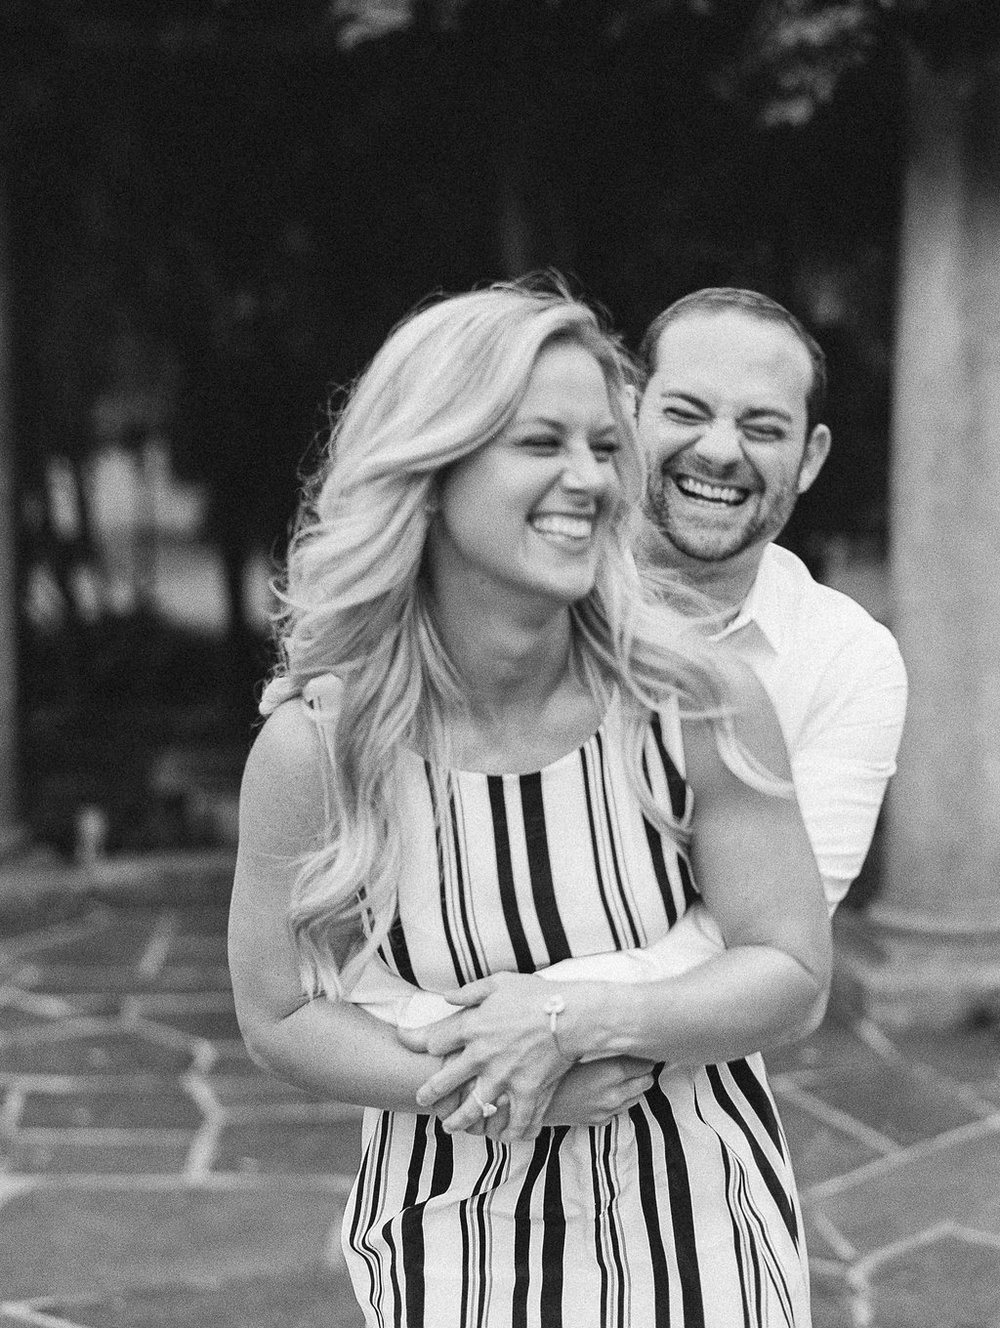 Cator-Woolford-Gardens-Engagement-atlanta-wedding-photographer-hannah-forsberg-17.jpg